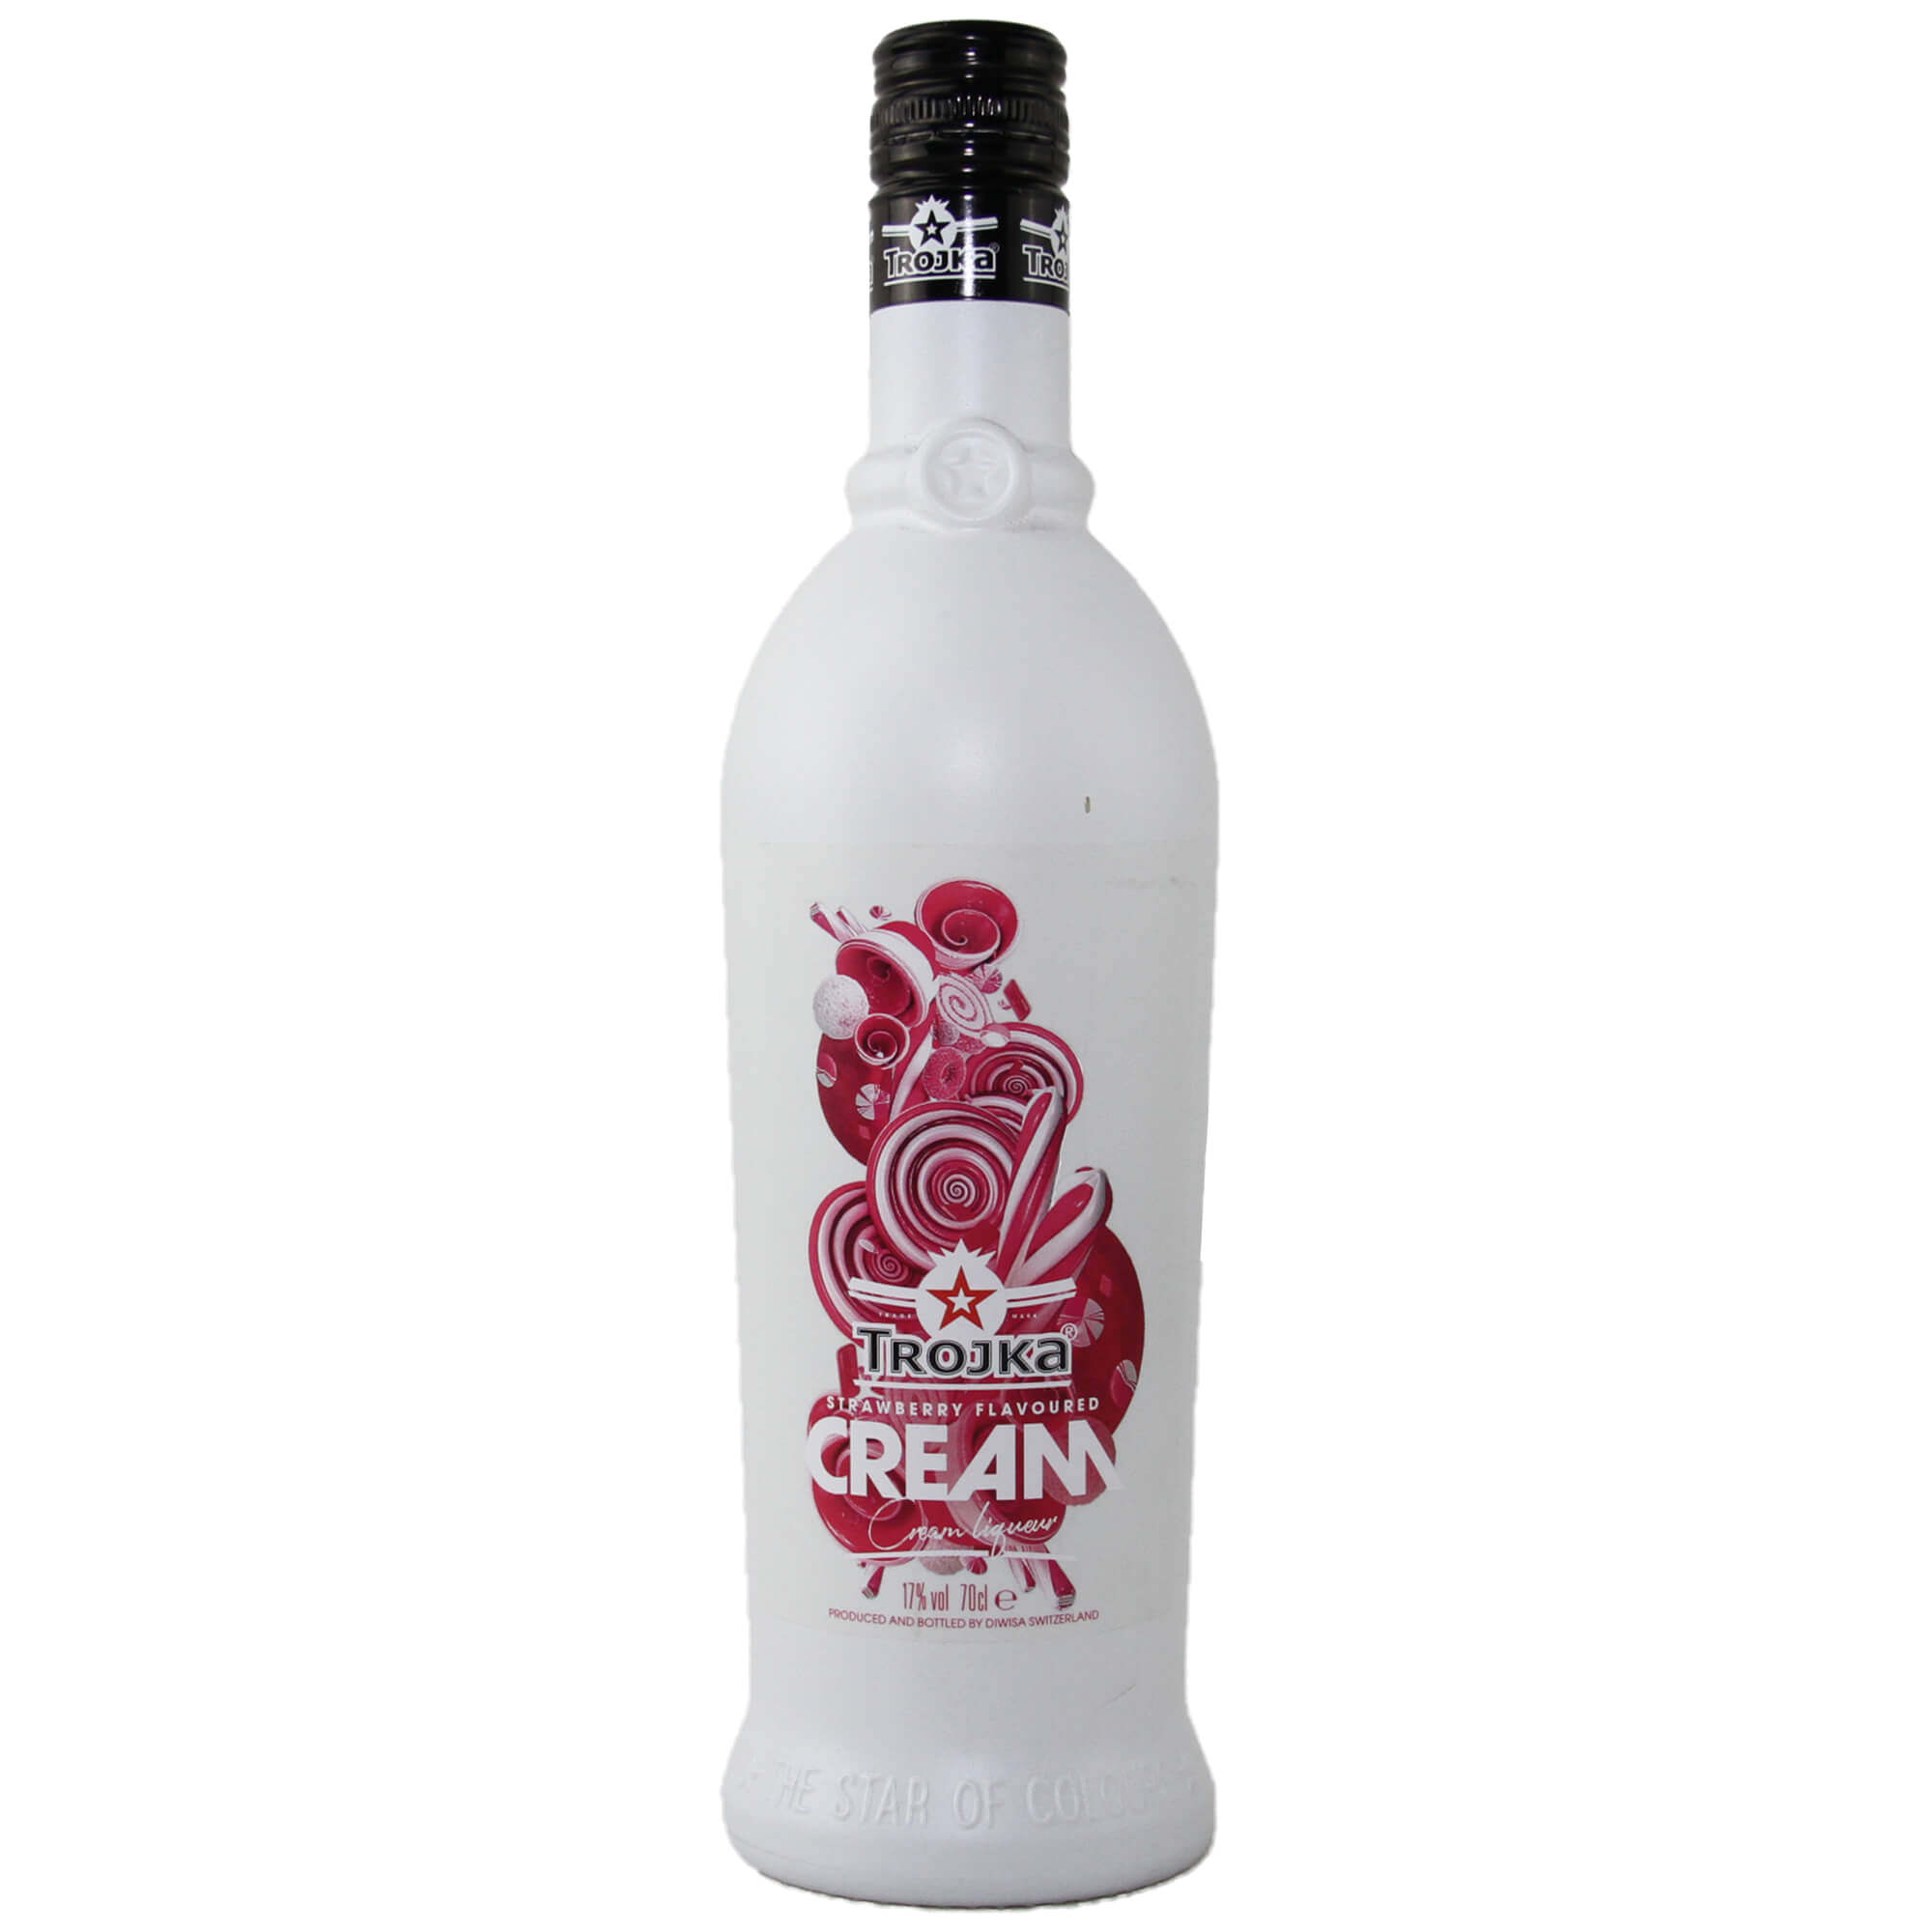 Trojka Vodka Cream 0,7l